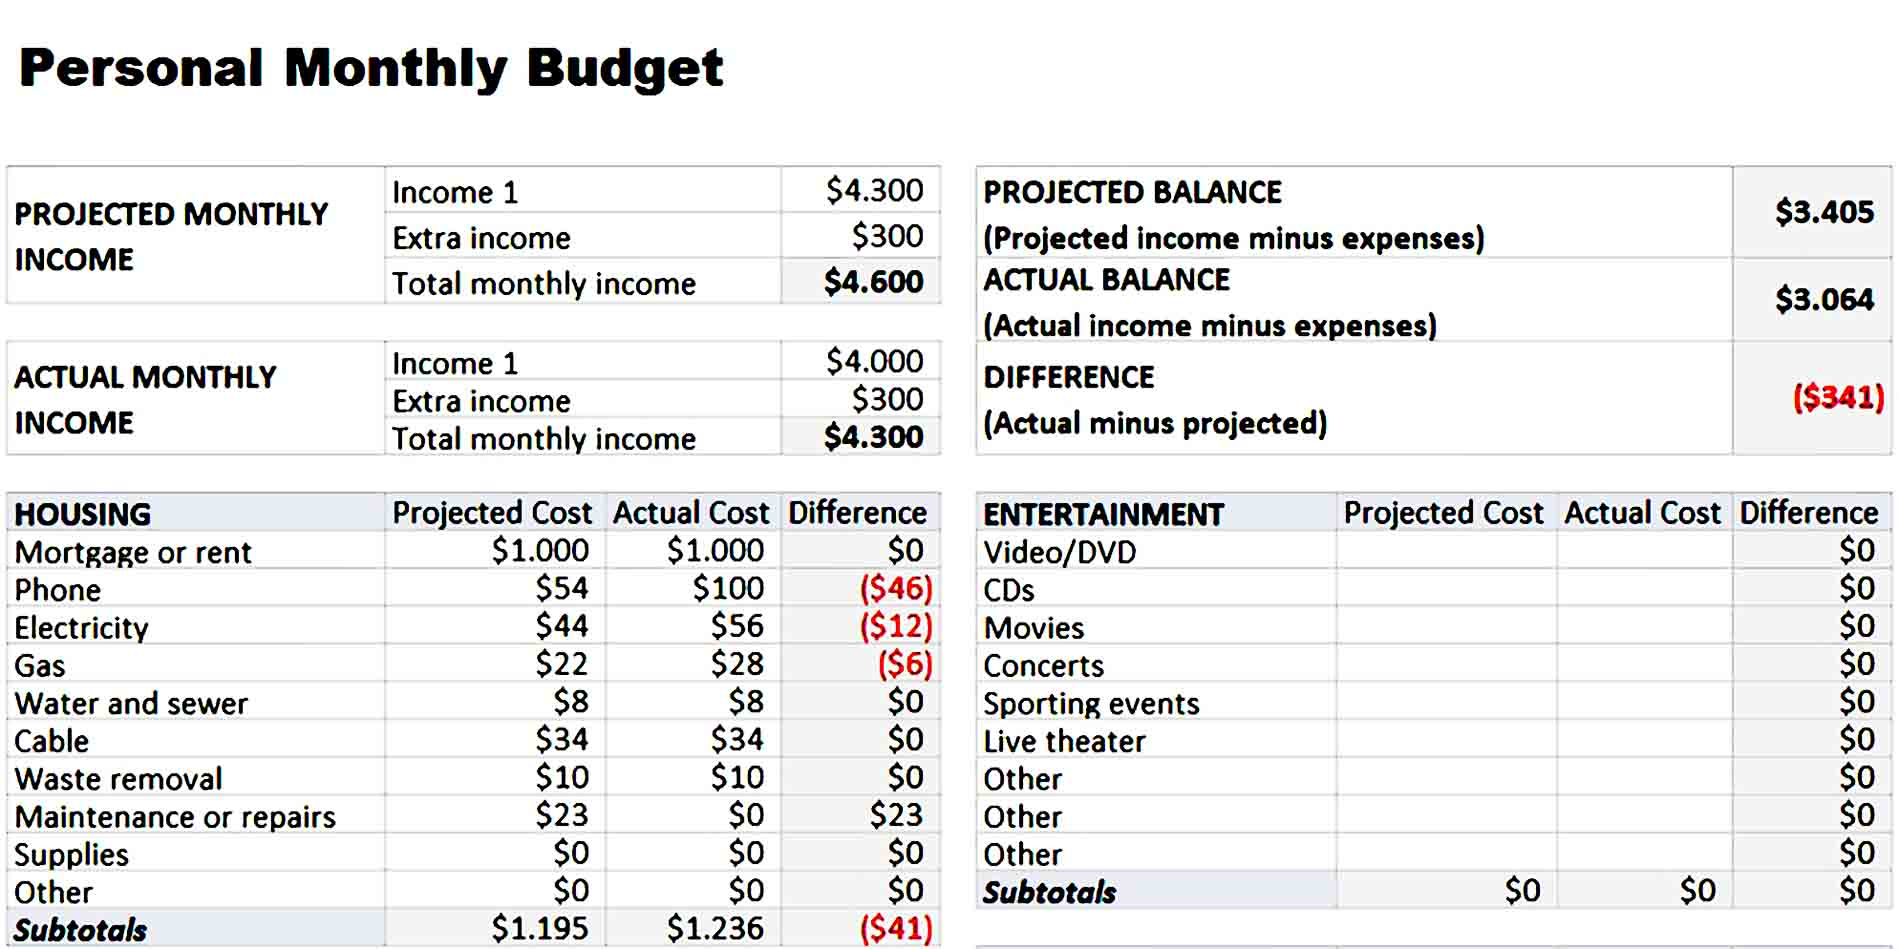 Personal Monthly Budget Template 1